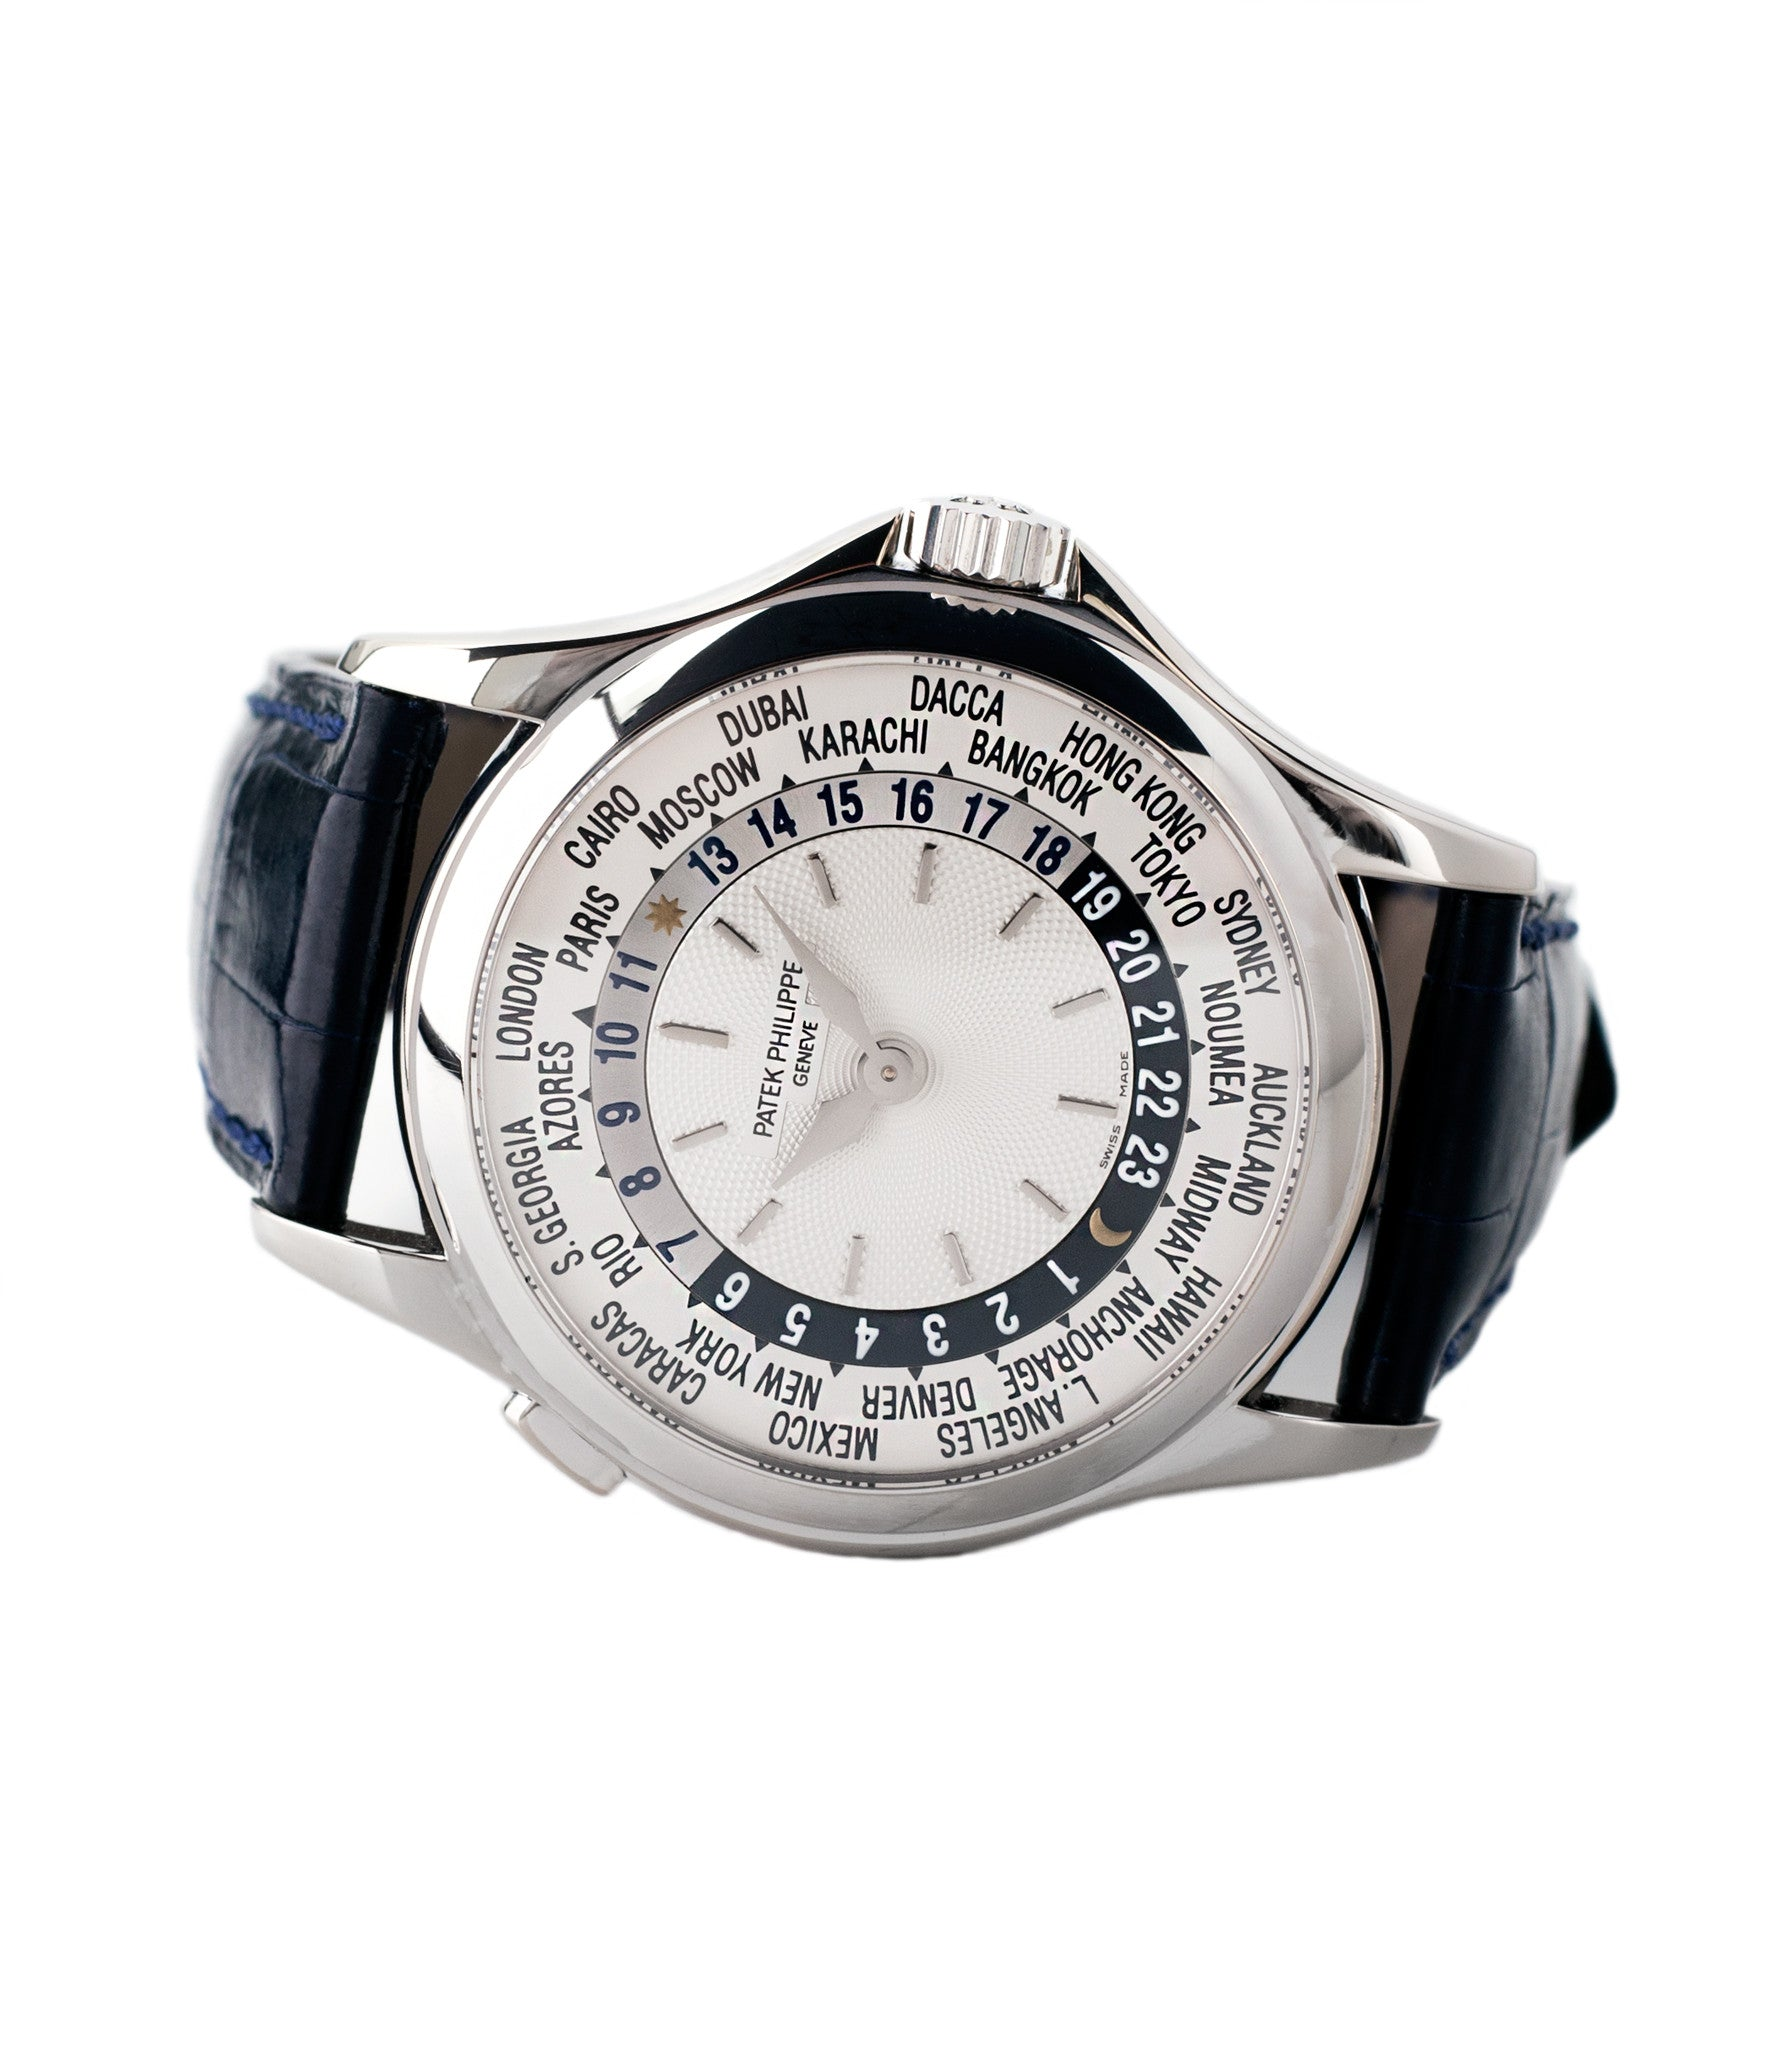 buy worldtimer Patek Philippe 5110G-001 white gold luxury dress watch online for sale at A Collected Man London specialist preowned luxury watches